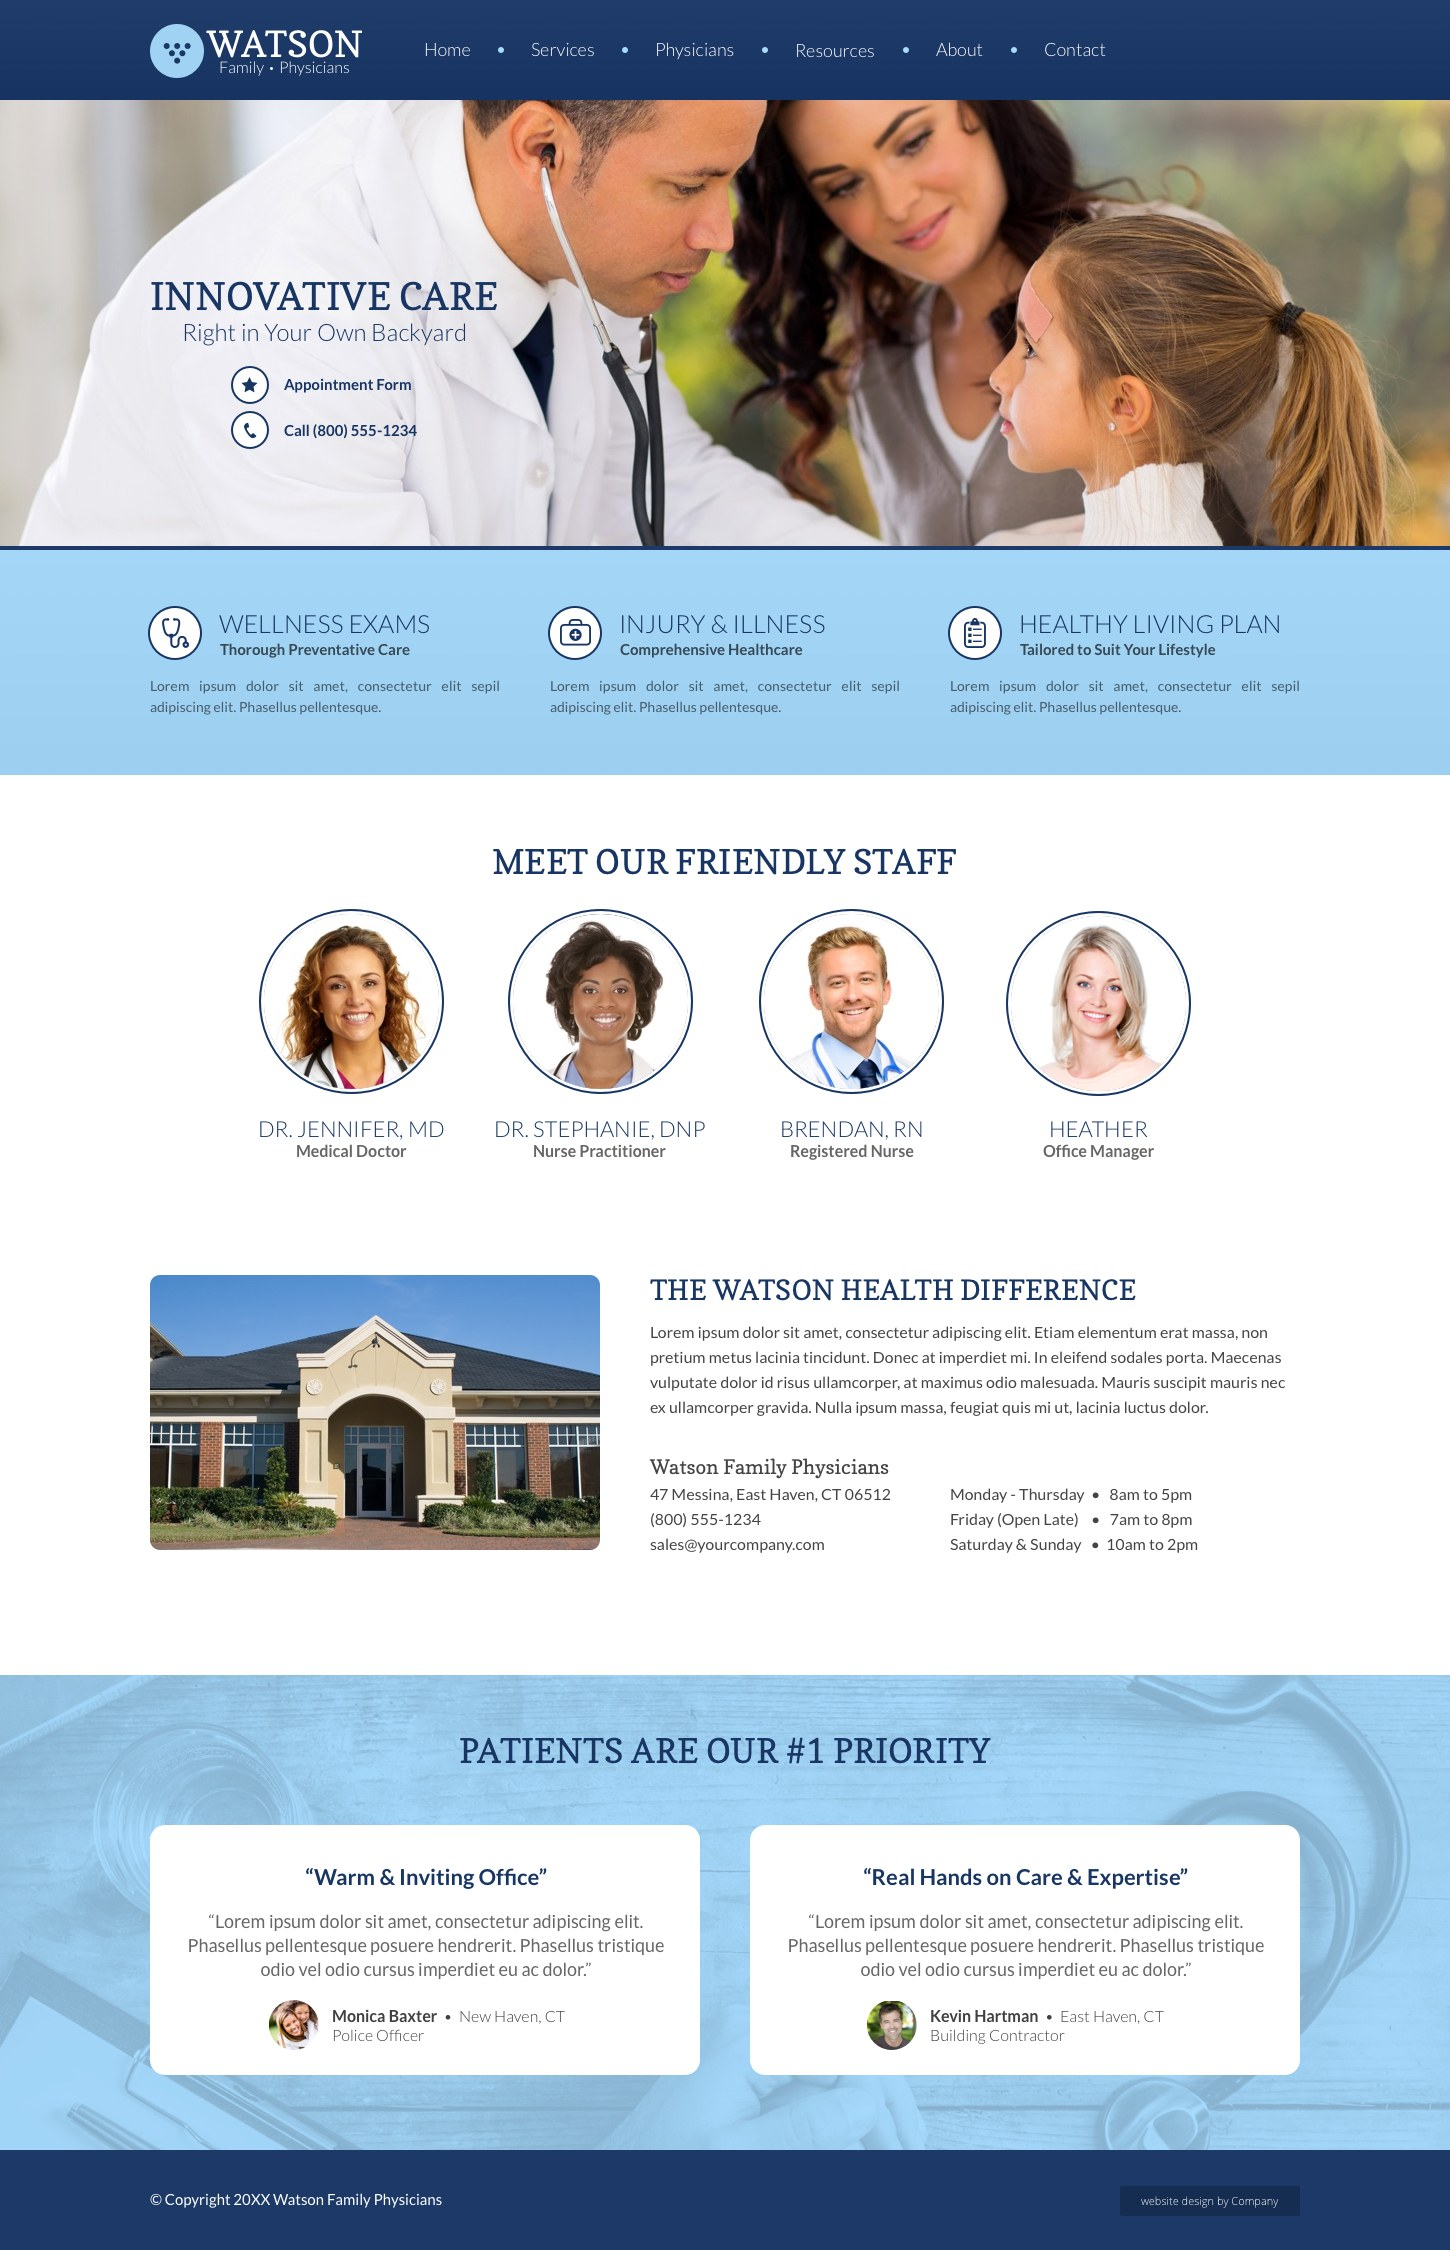 Image for a medical website design example layout